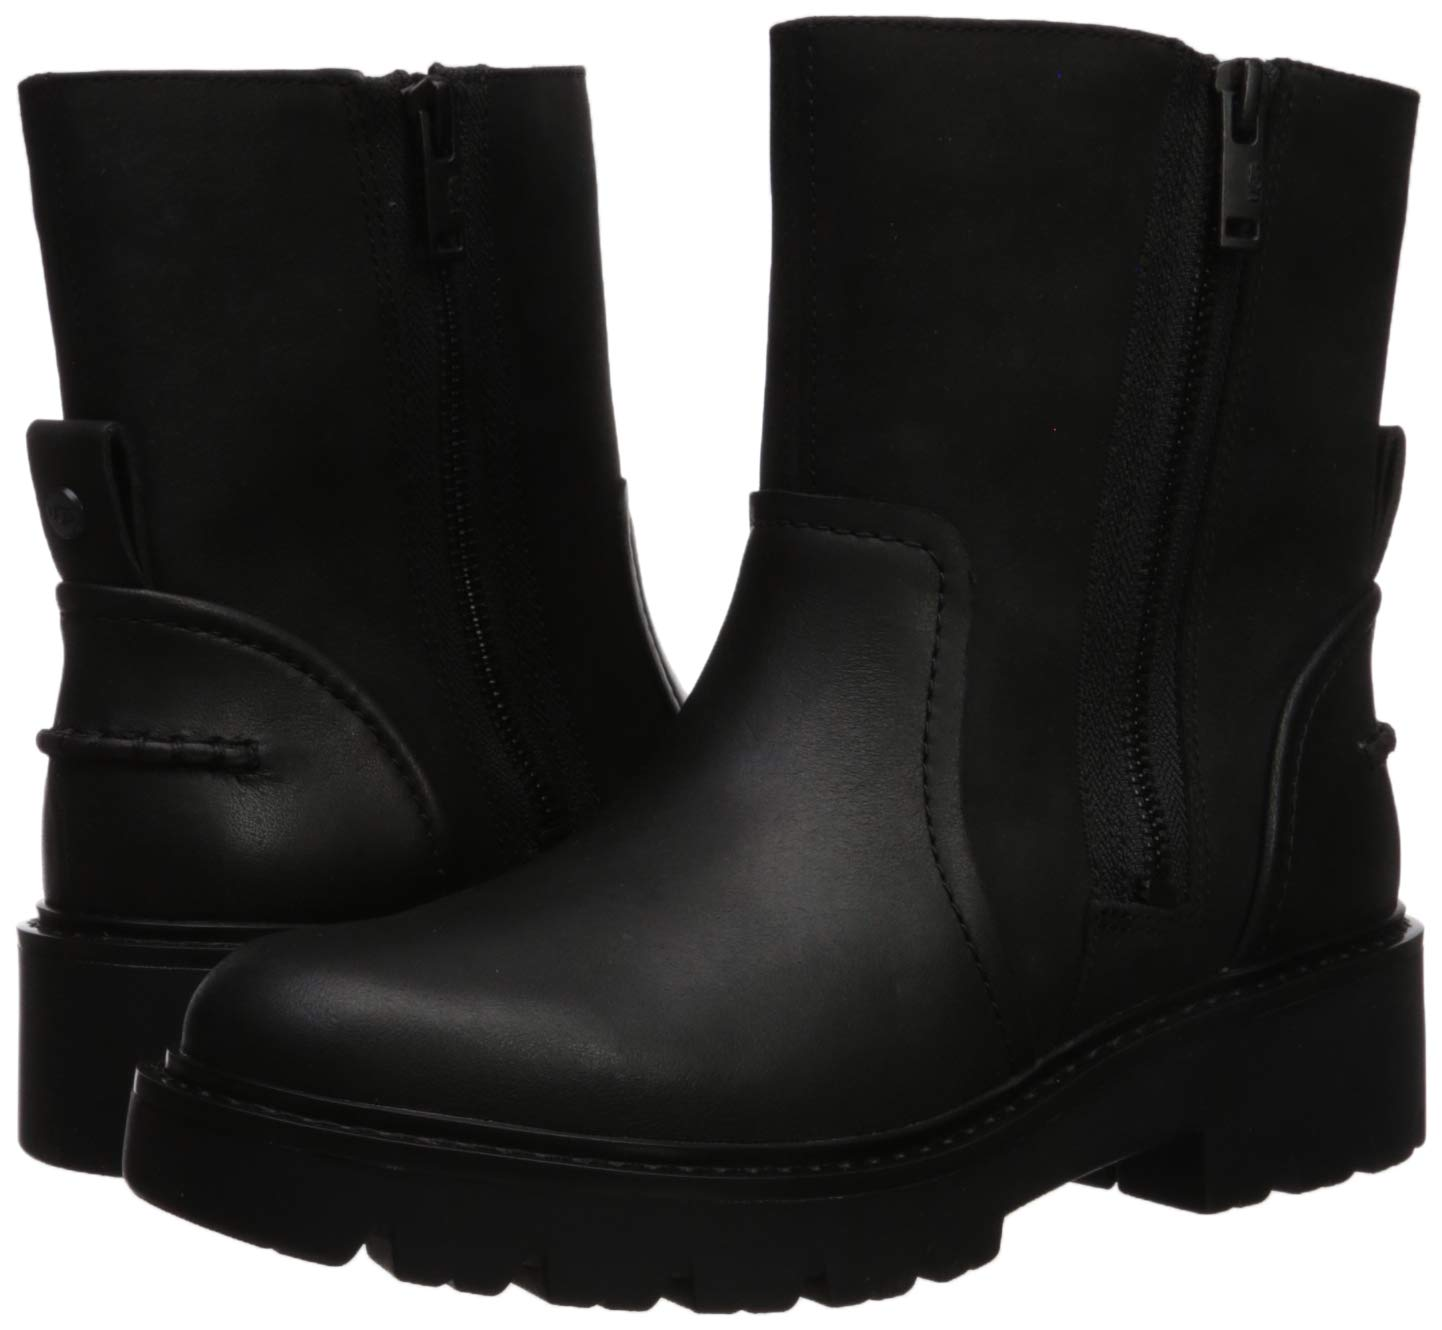 UGG Women's Polk Combat Boot, Black, 5.5 M US 6